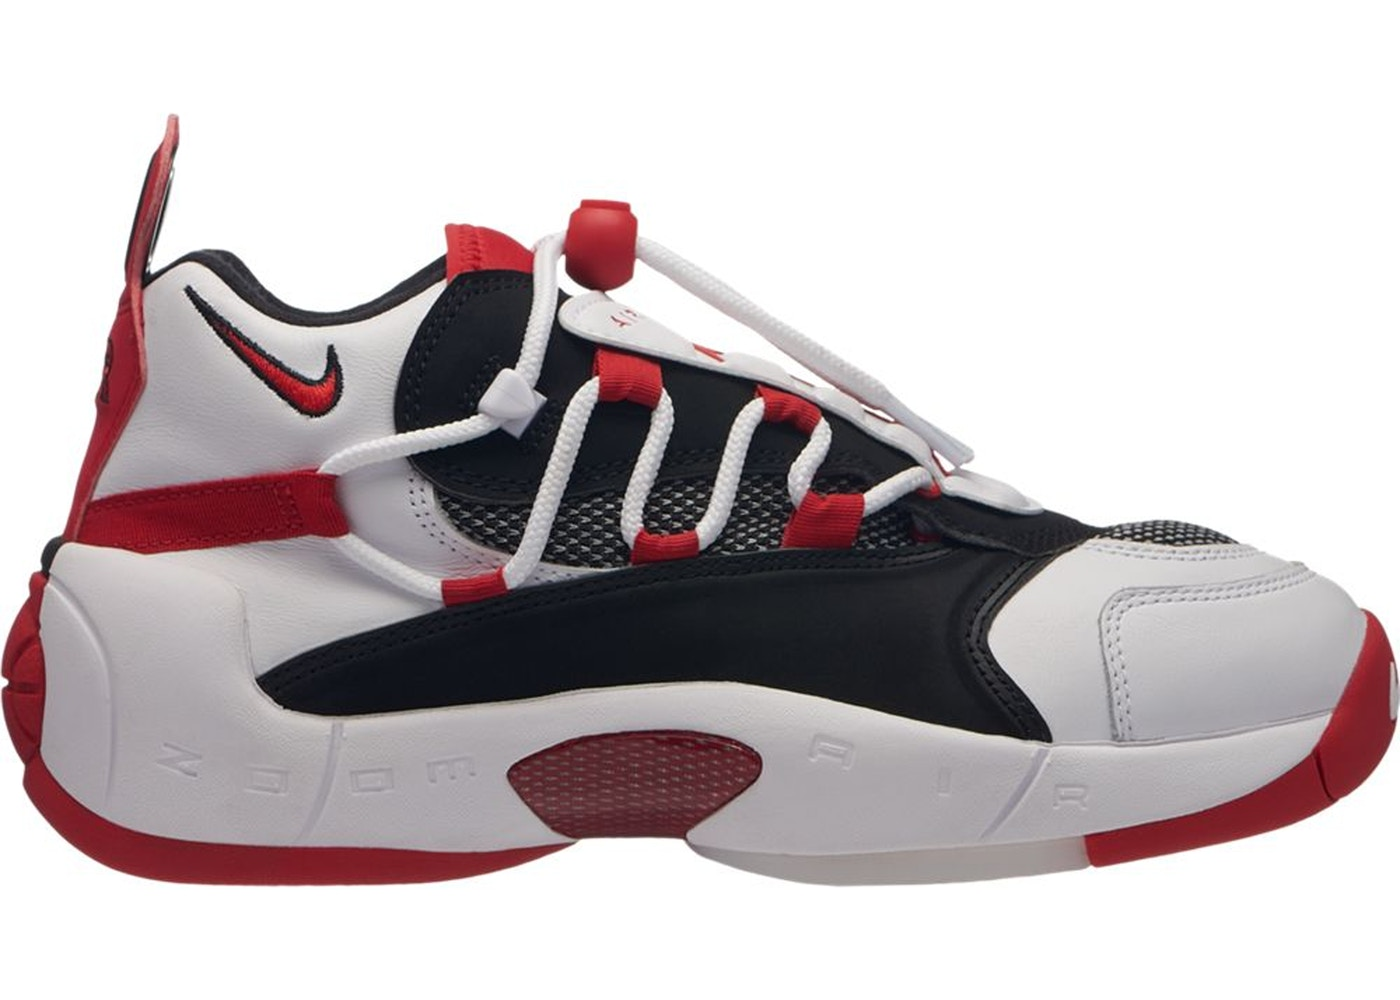 0a68f8f5 Air Swoopes 2 White Black Red (W) - 917592-100